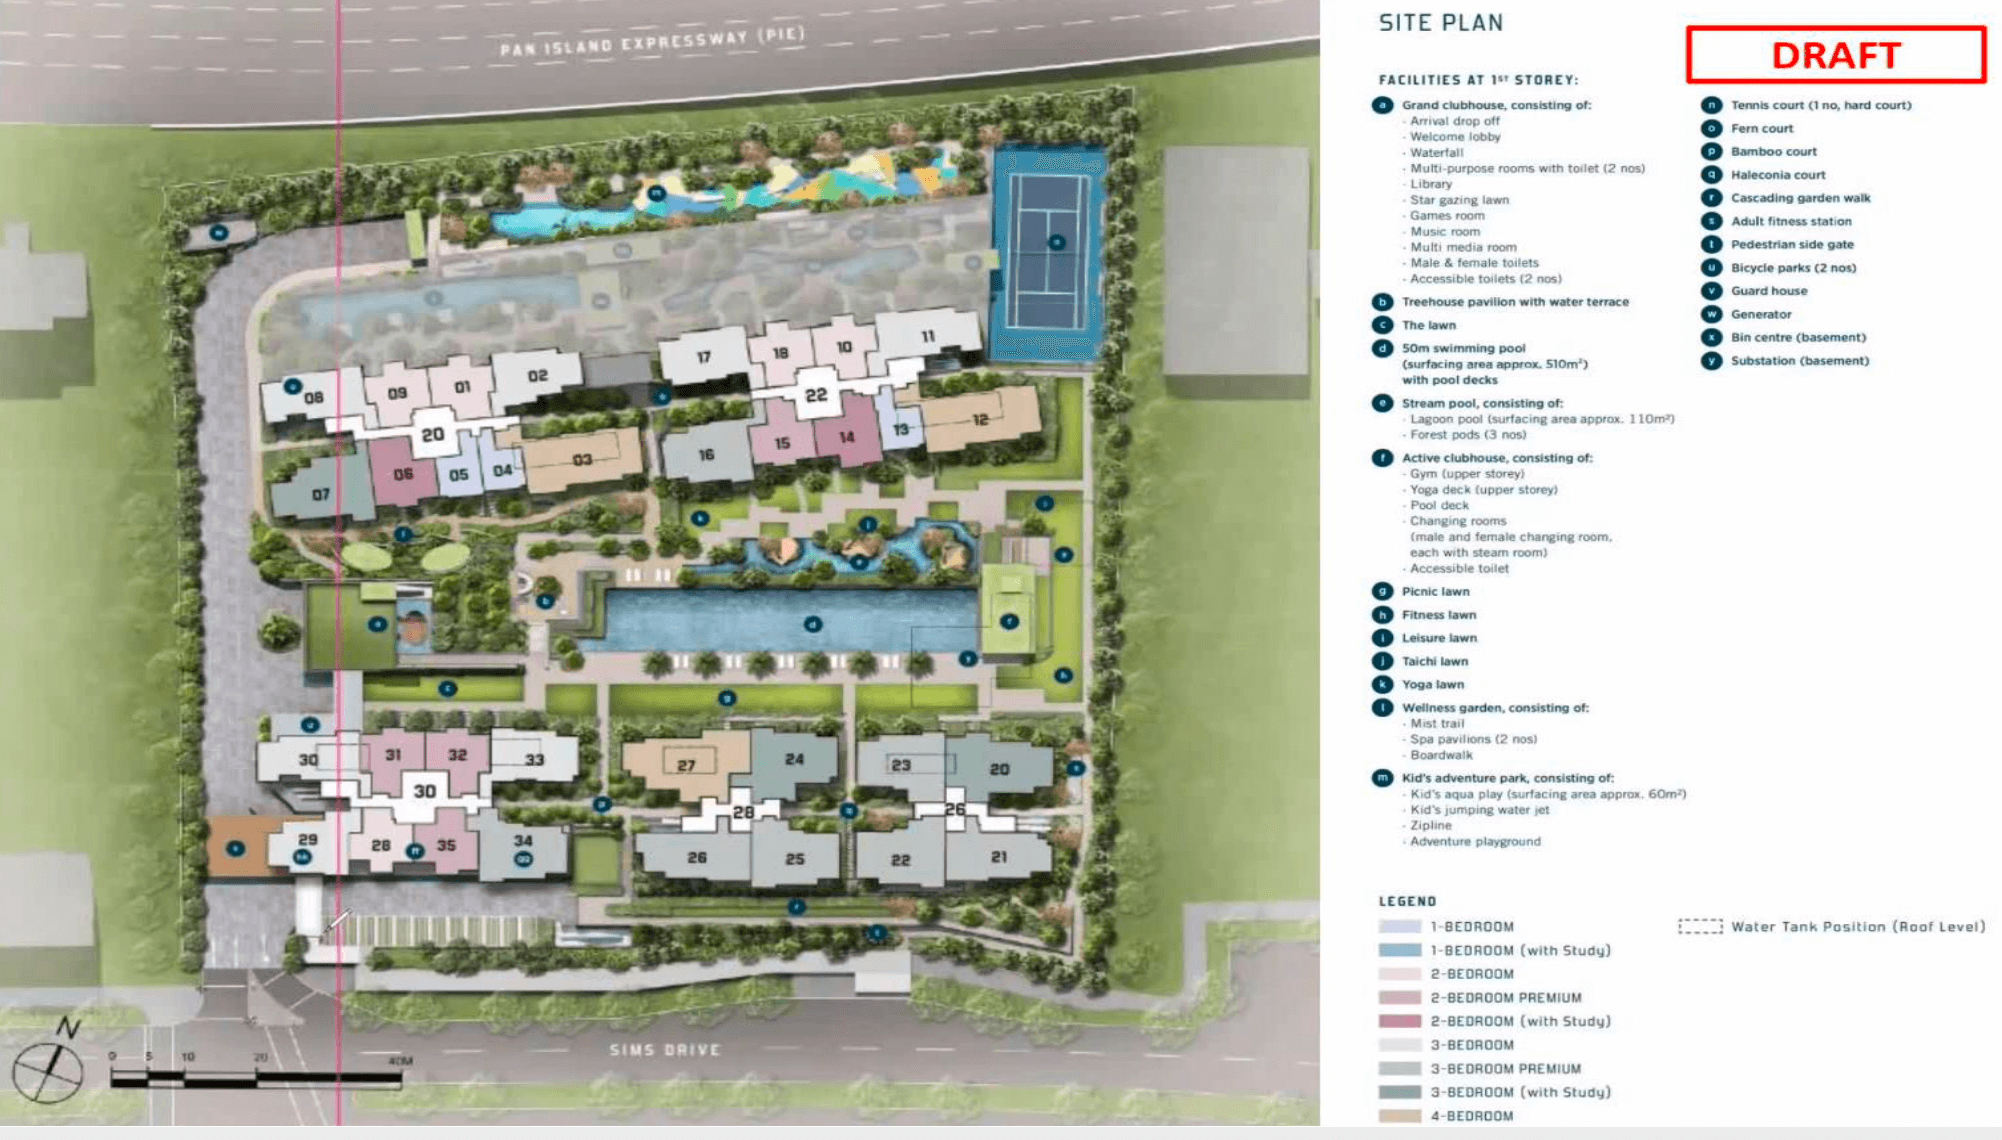 Penrose New Condo Singapore Site Plan